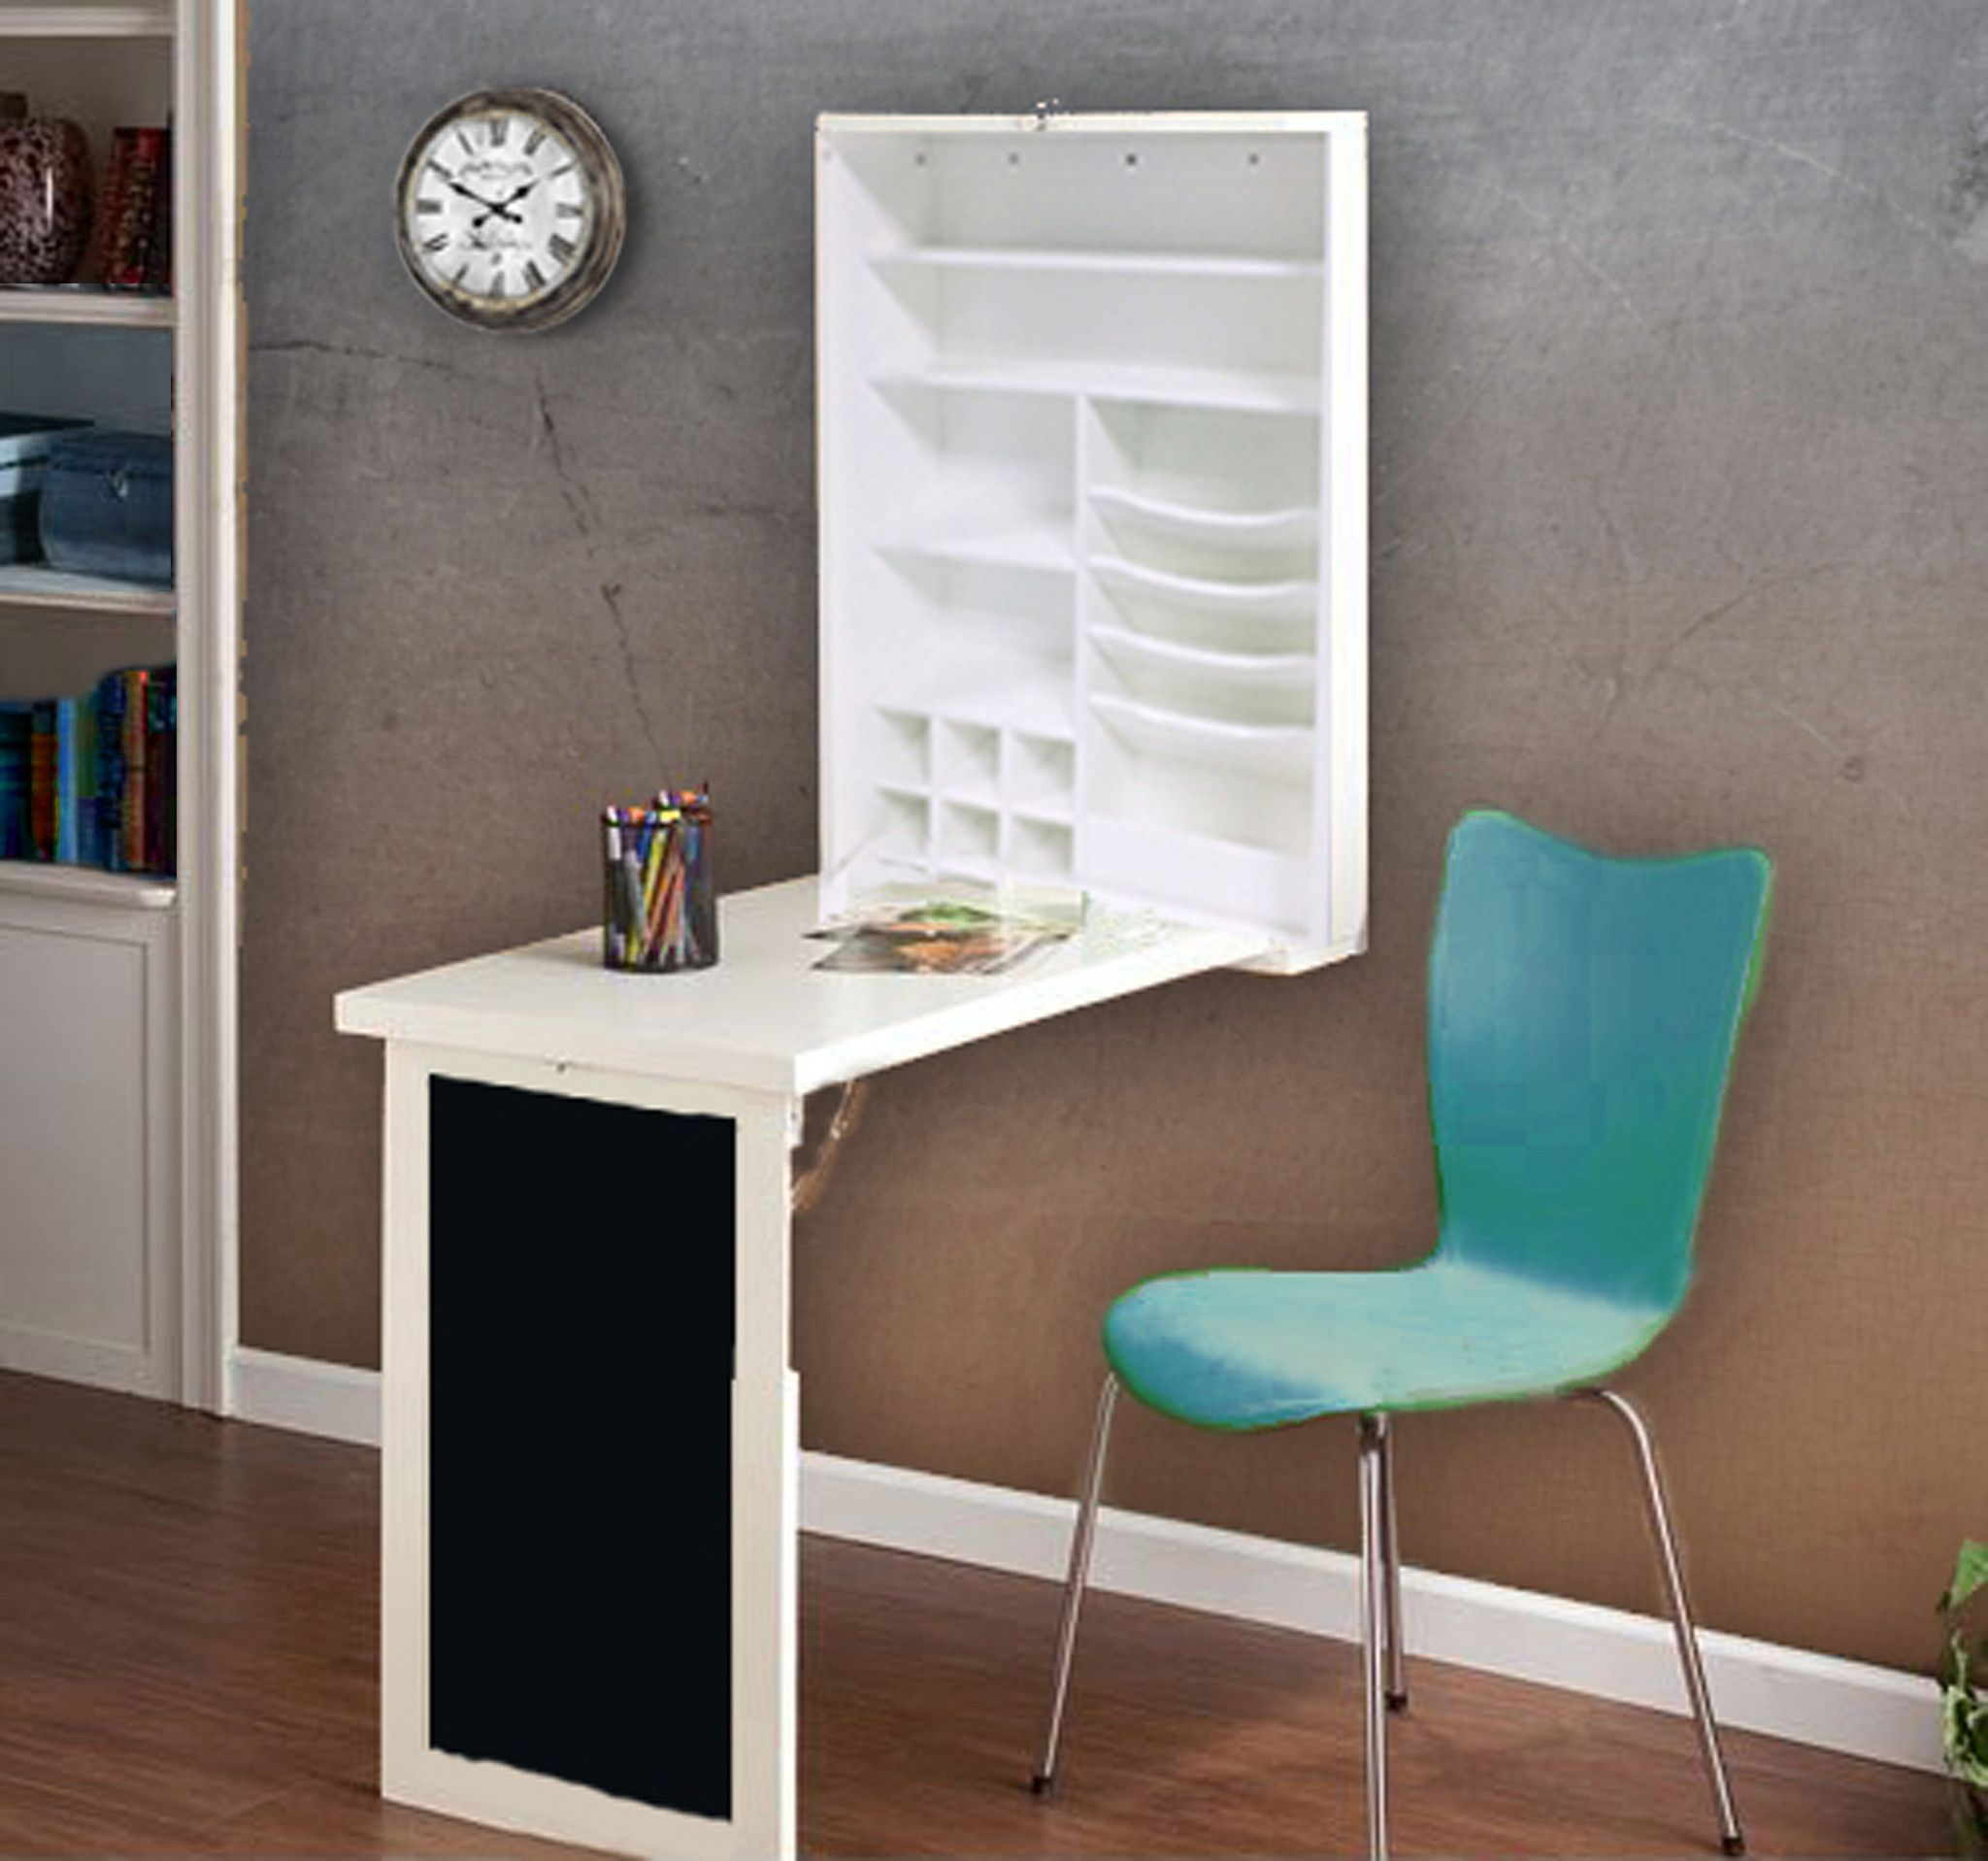 Utopia Alley Fold Down Desk Table Wall Cabinet With Chalkboard White Fold Down Desk Floating Desk Fold Down Table